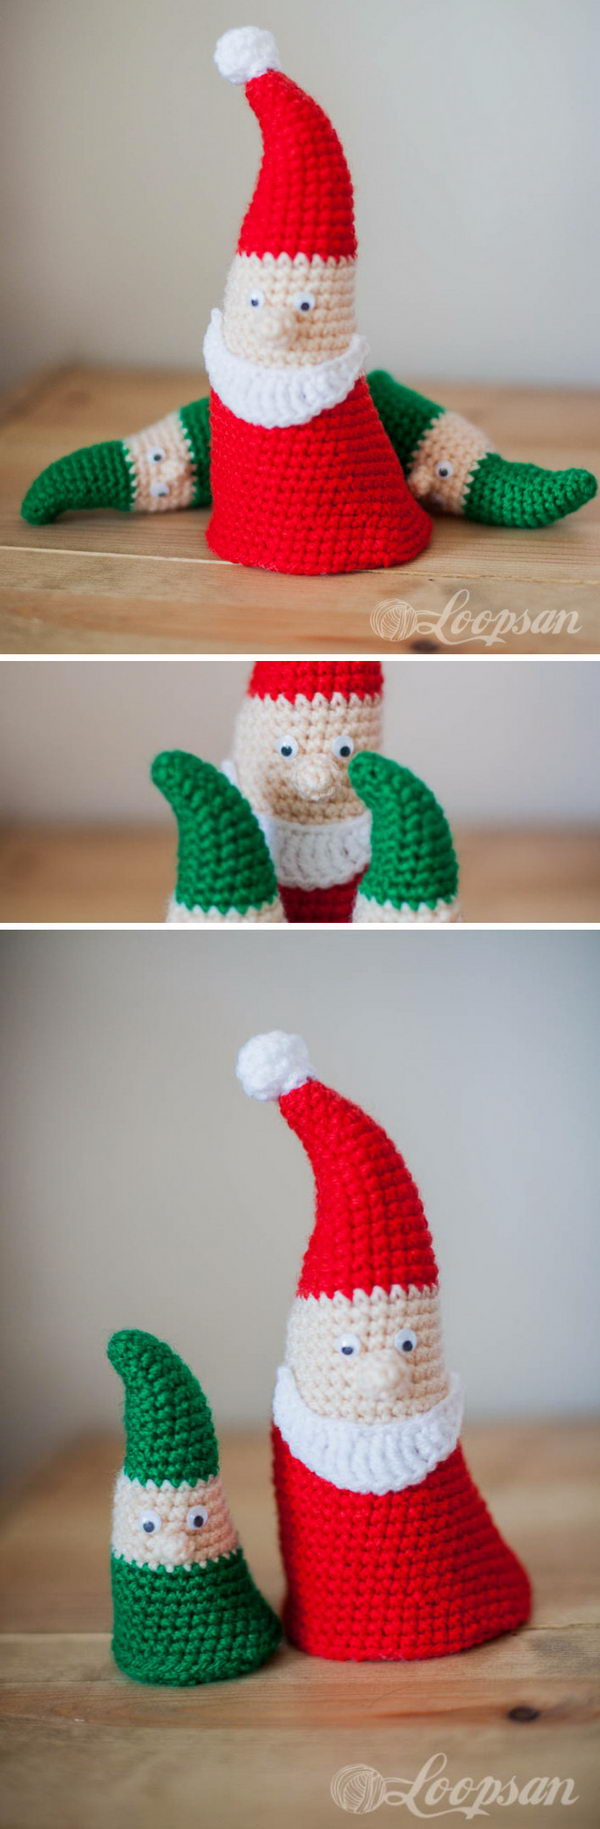 25 Crochet Santa Claus Ideas 2017